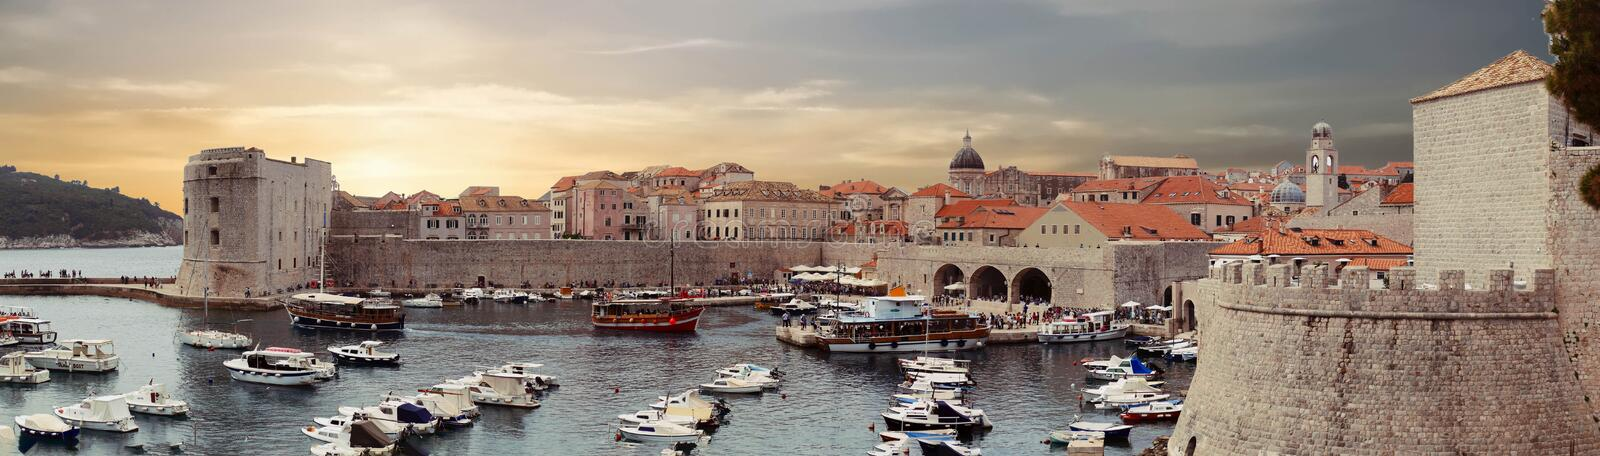 Panorama  of the port of the old city of  Dubrovnik stock photos